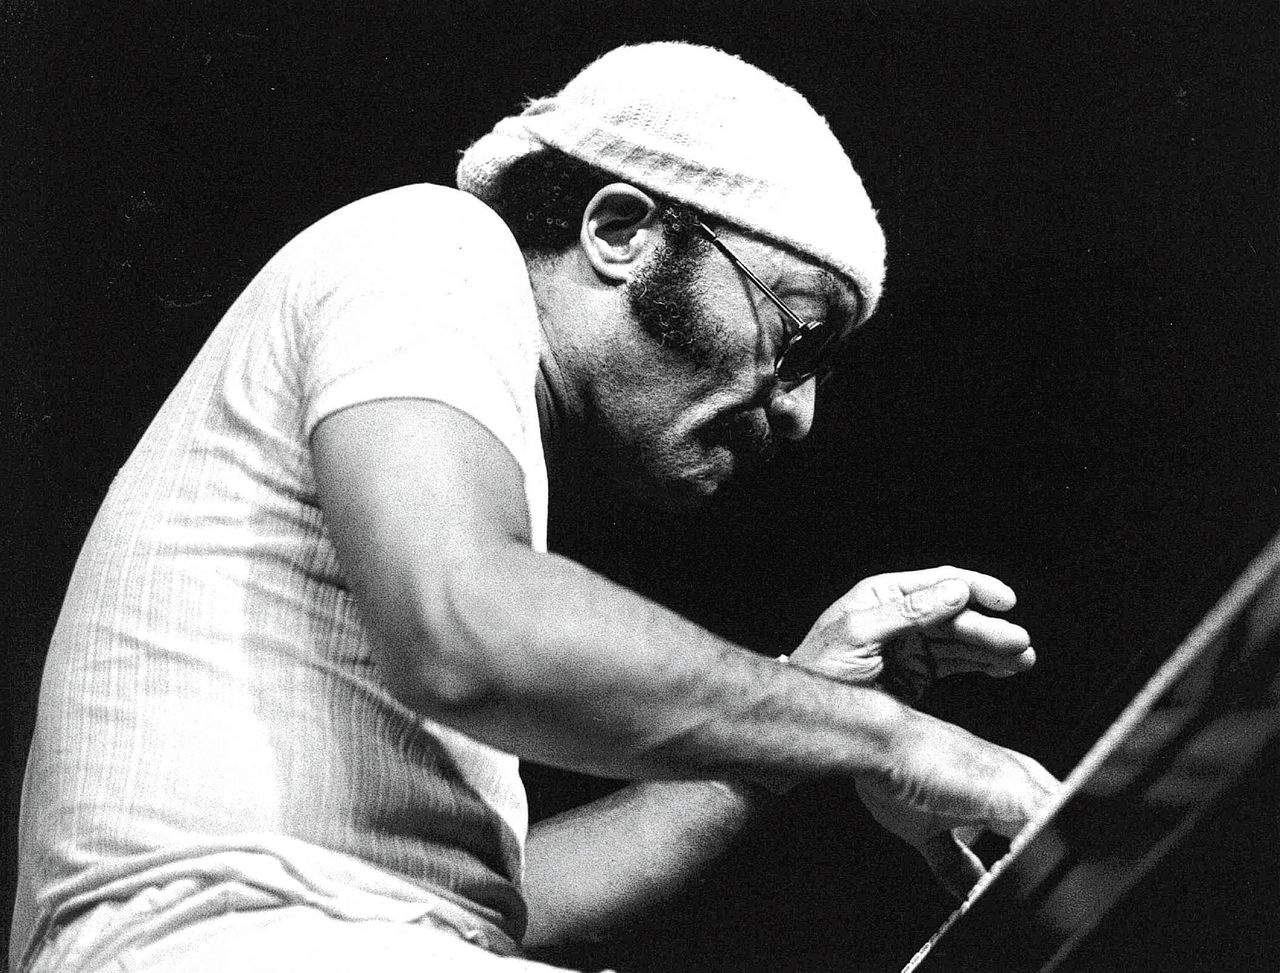 Cecil Taylor op het North Sea Jazz Festival in 1976 in Den Haag.